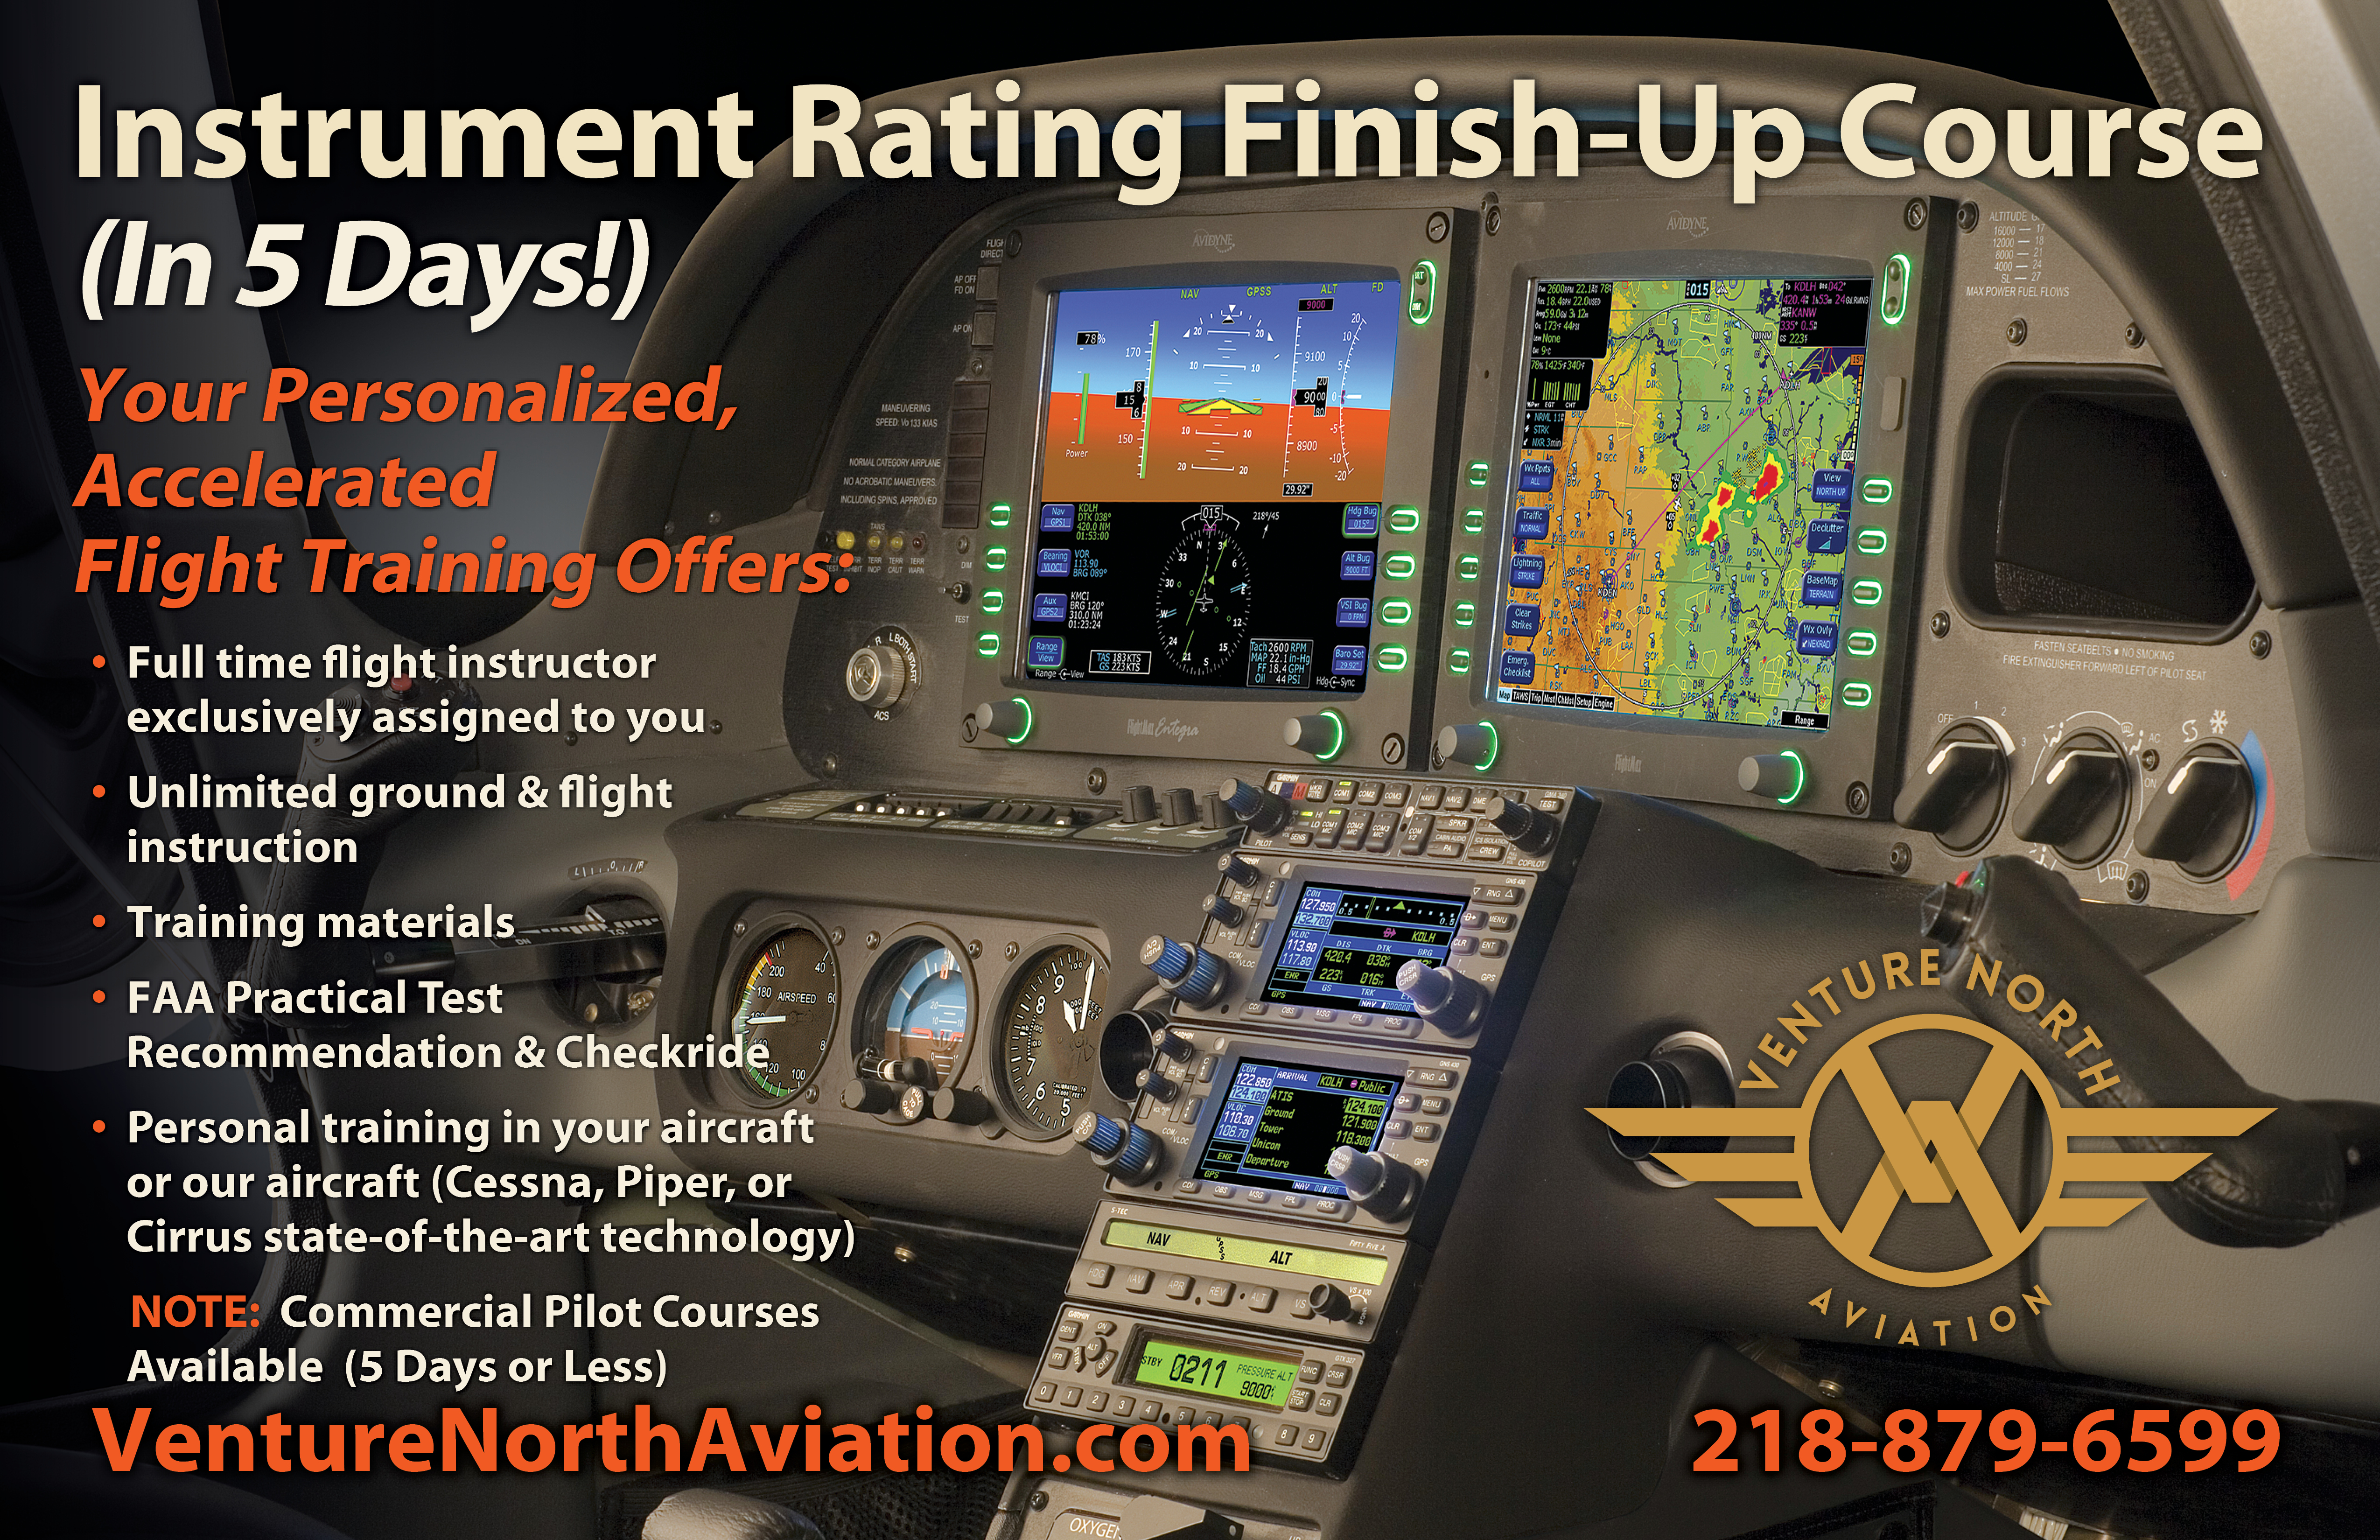 5 Day IFR Finish-Up Course